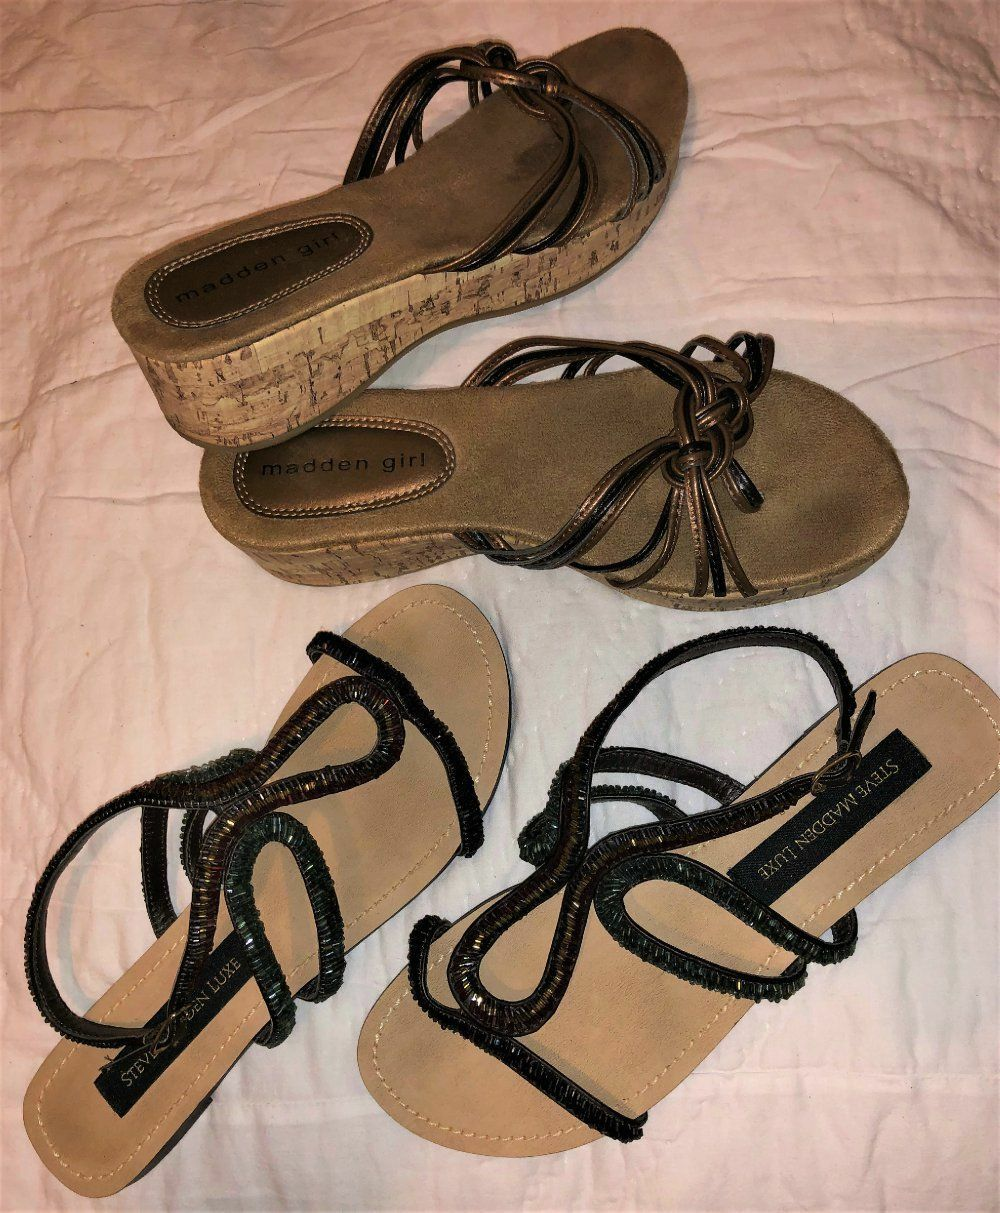 Lot 2pr Steve Madden Luxe Beaded Crystal Strappy Flat Sandals & SlipOn Wedges 7 Steve Madden Does Not Apply